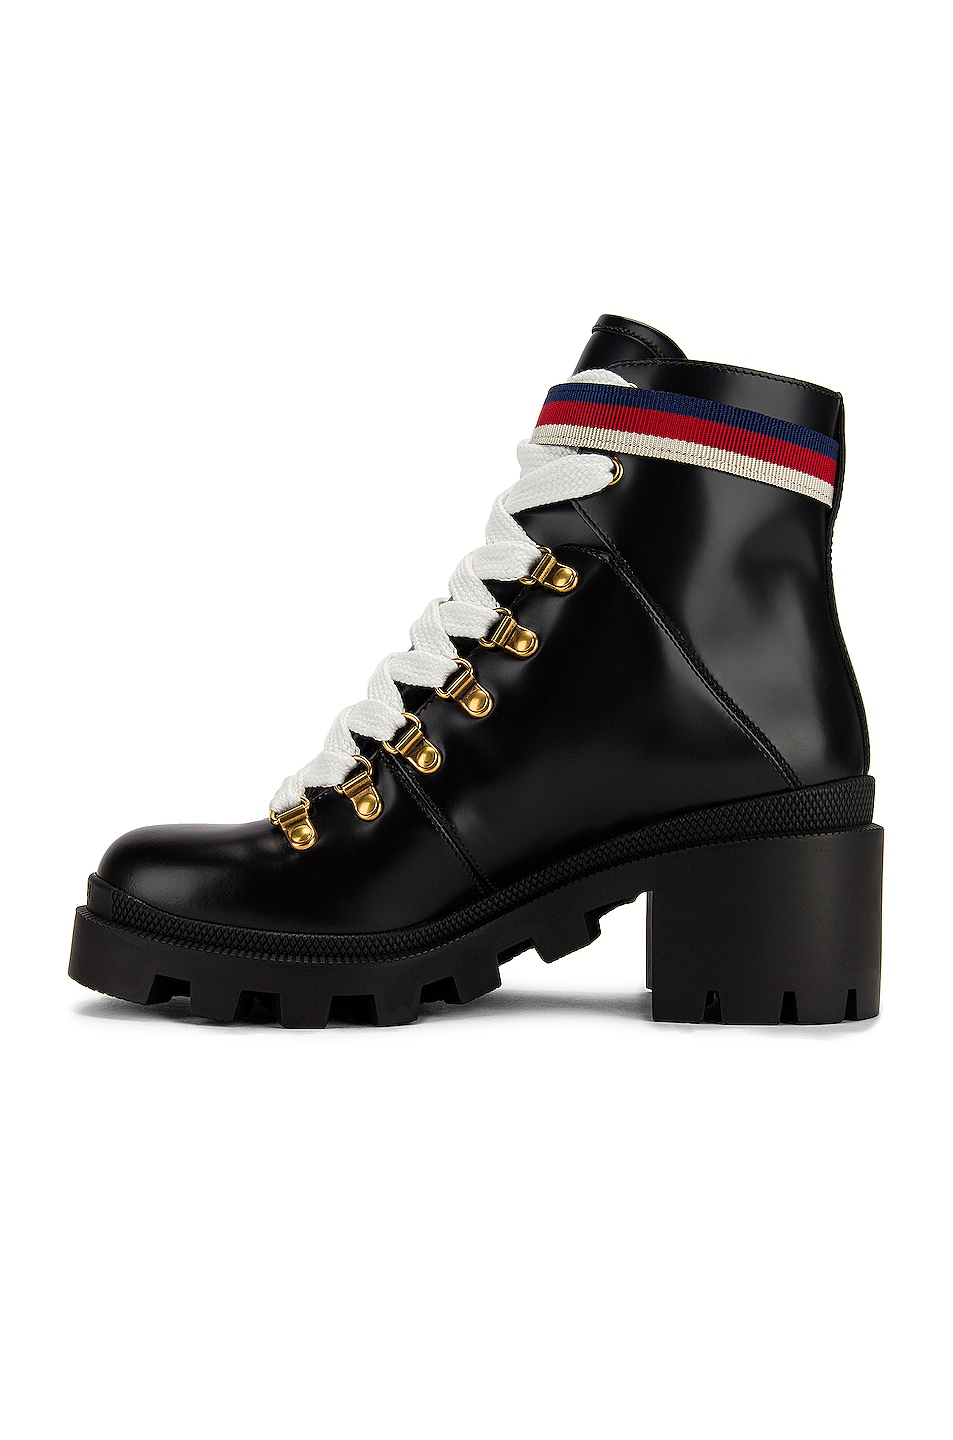 Image 5 of Gucci Trip Ankle Boots in Black & Red